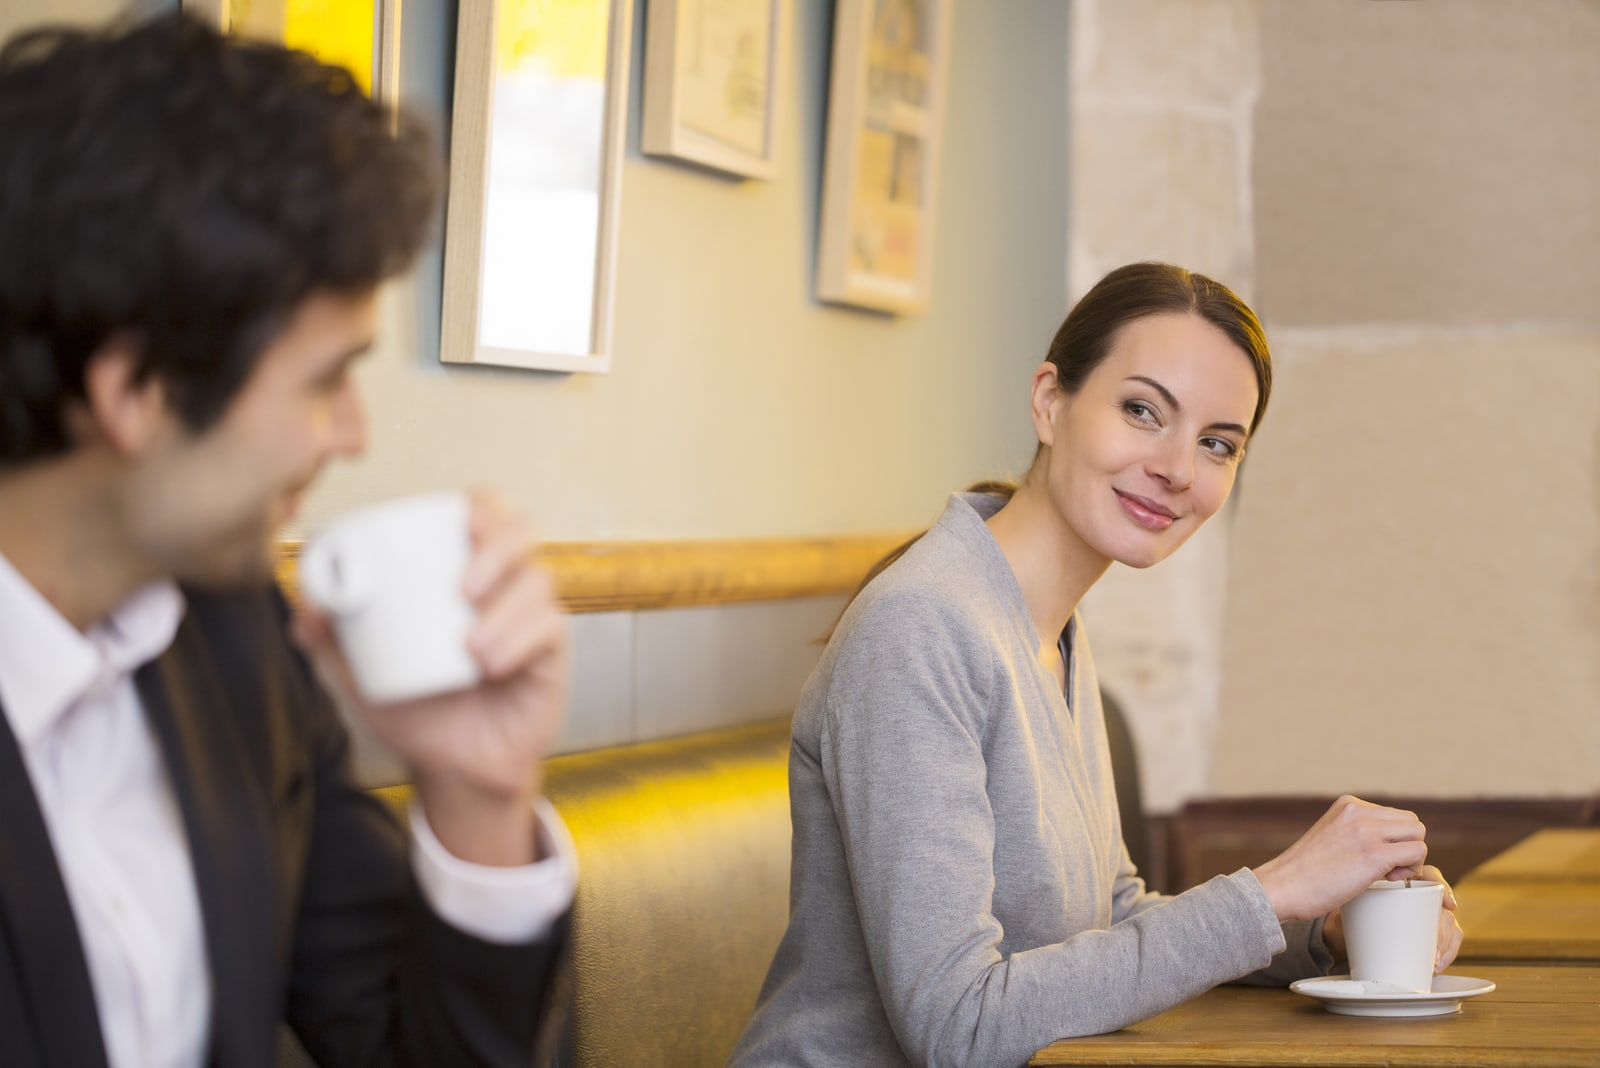 in a cafe a woman flirts with a man